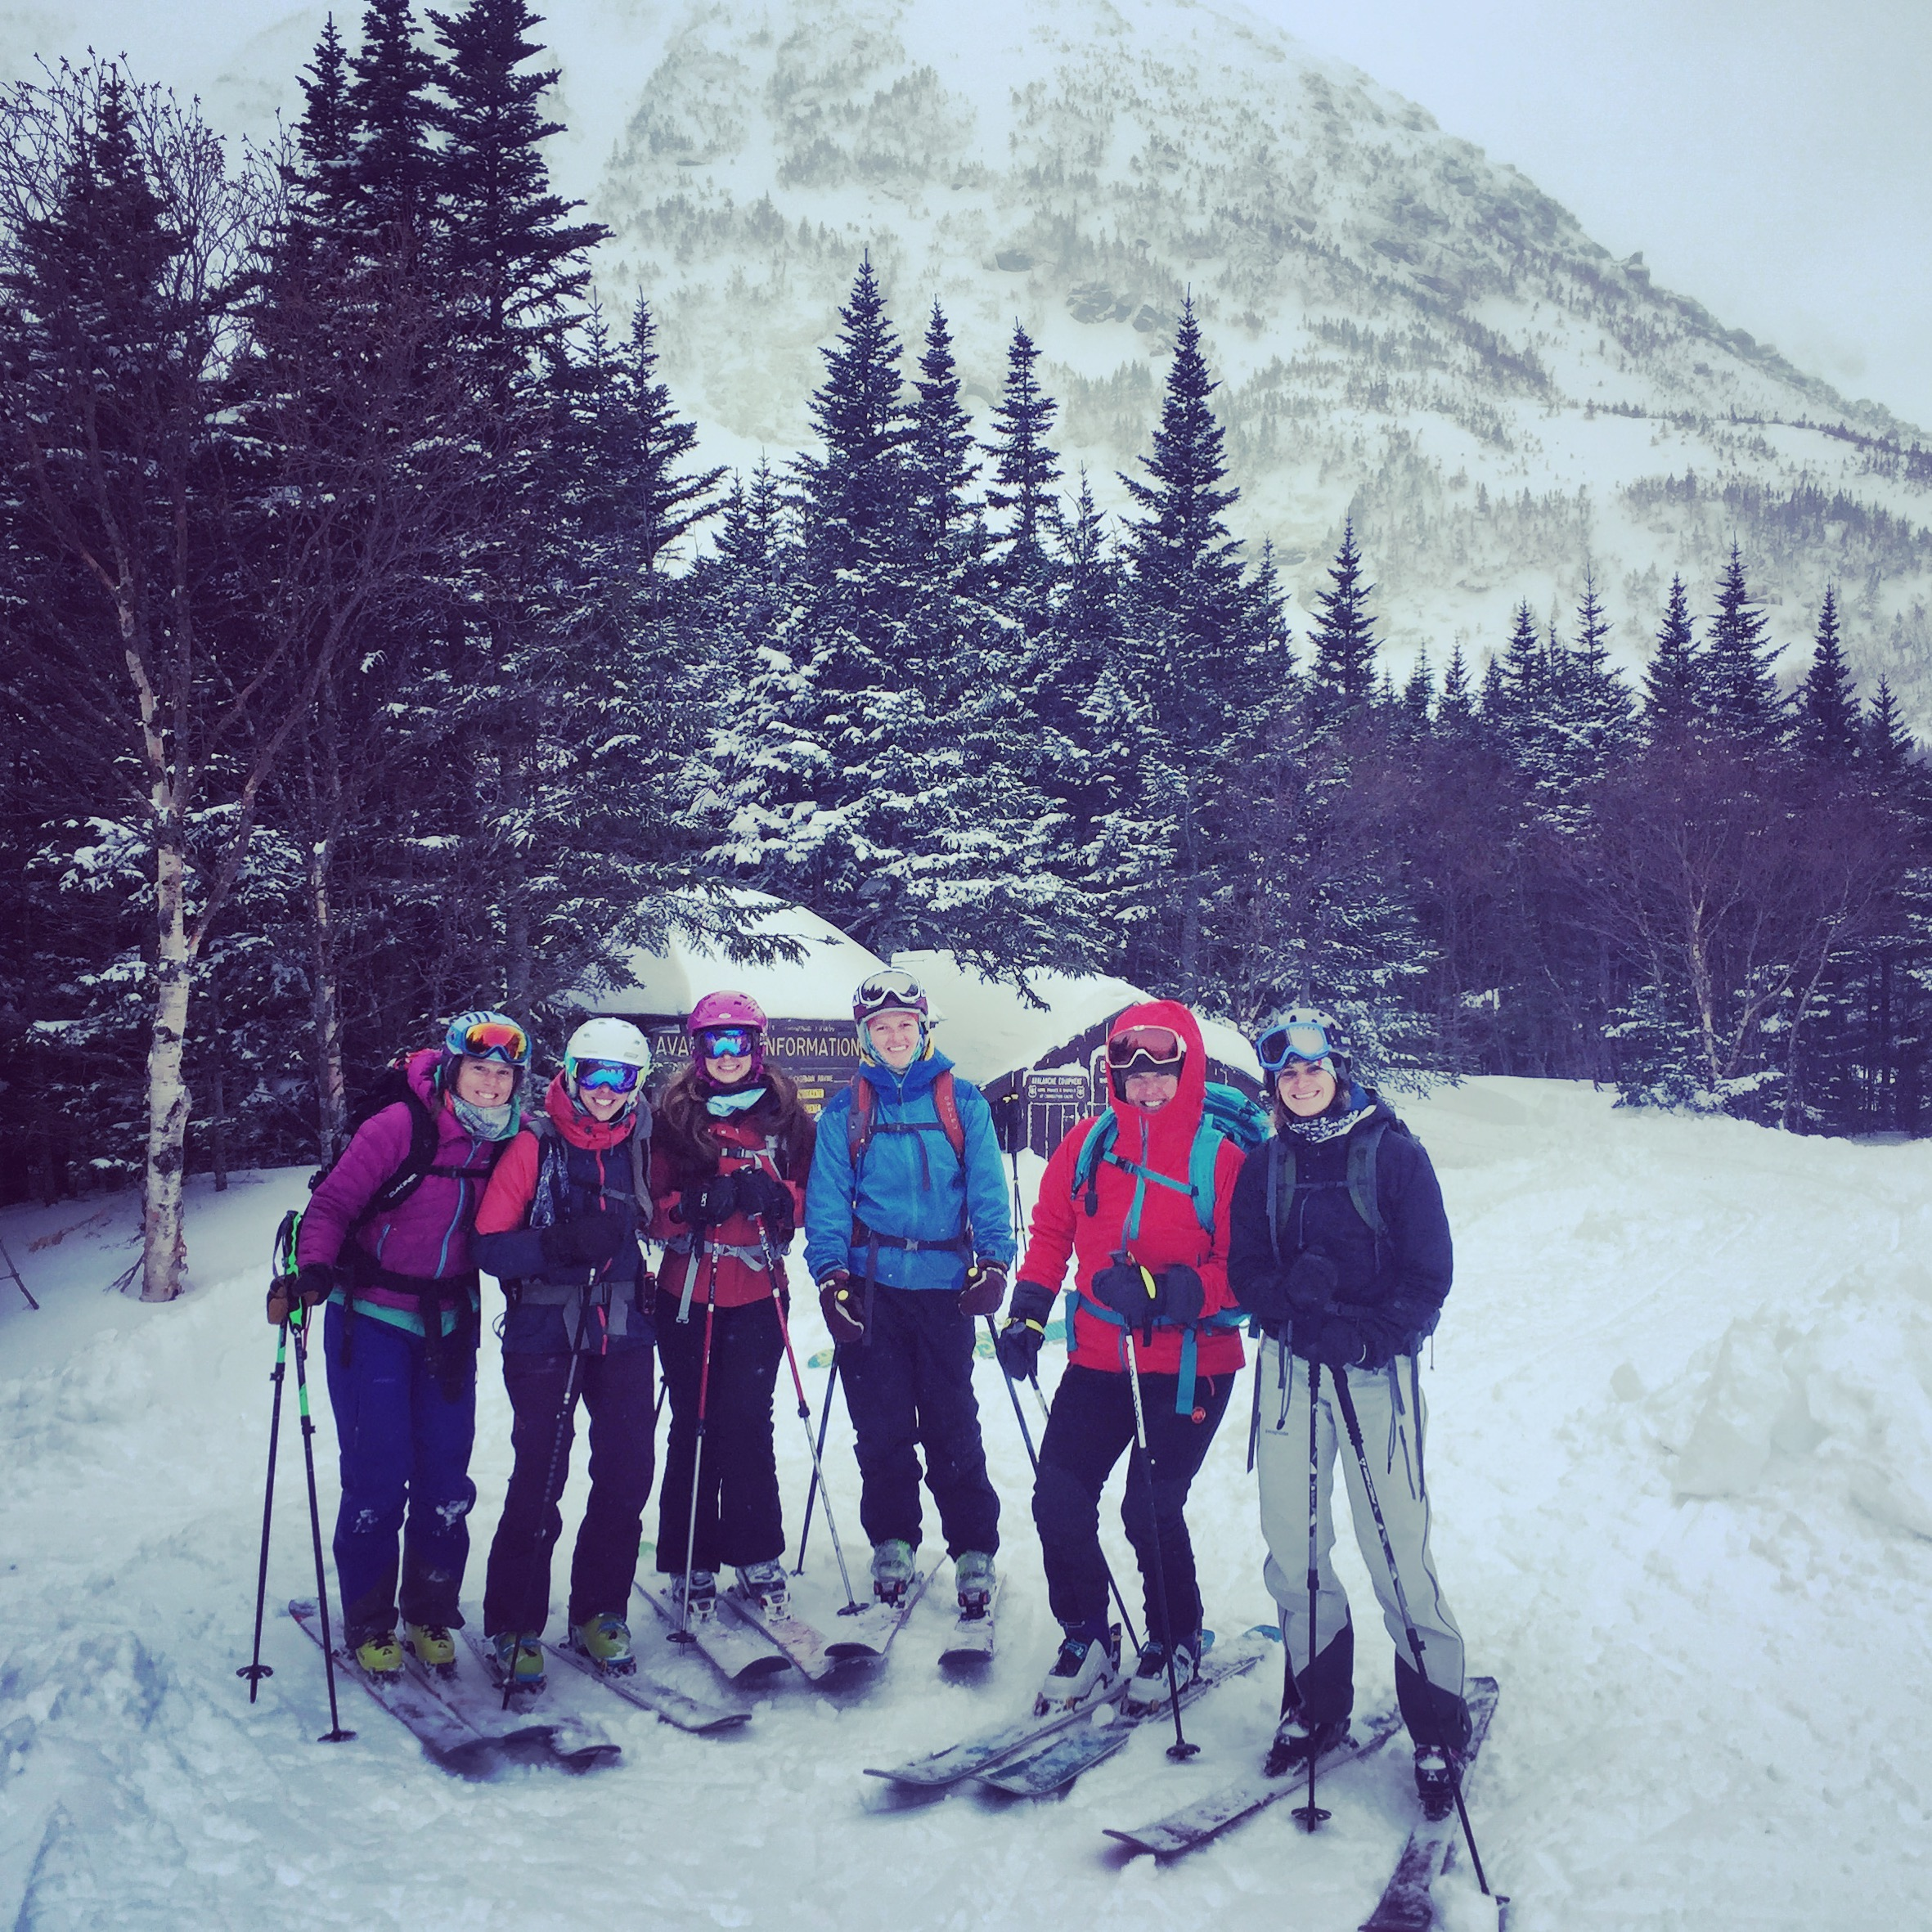 RETREATS - A weekend of adventure, bliss and education